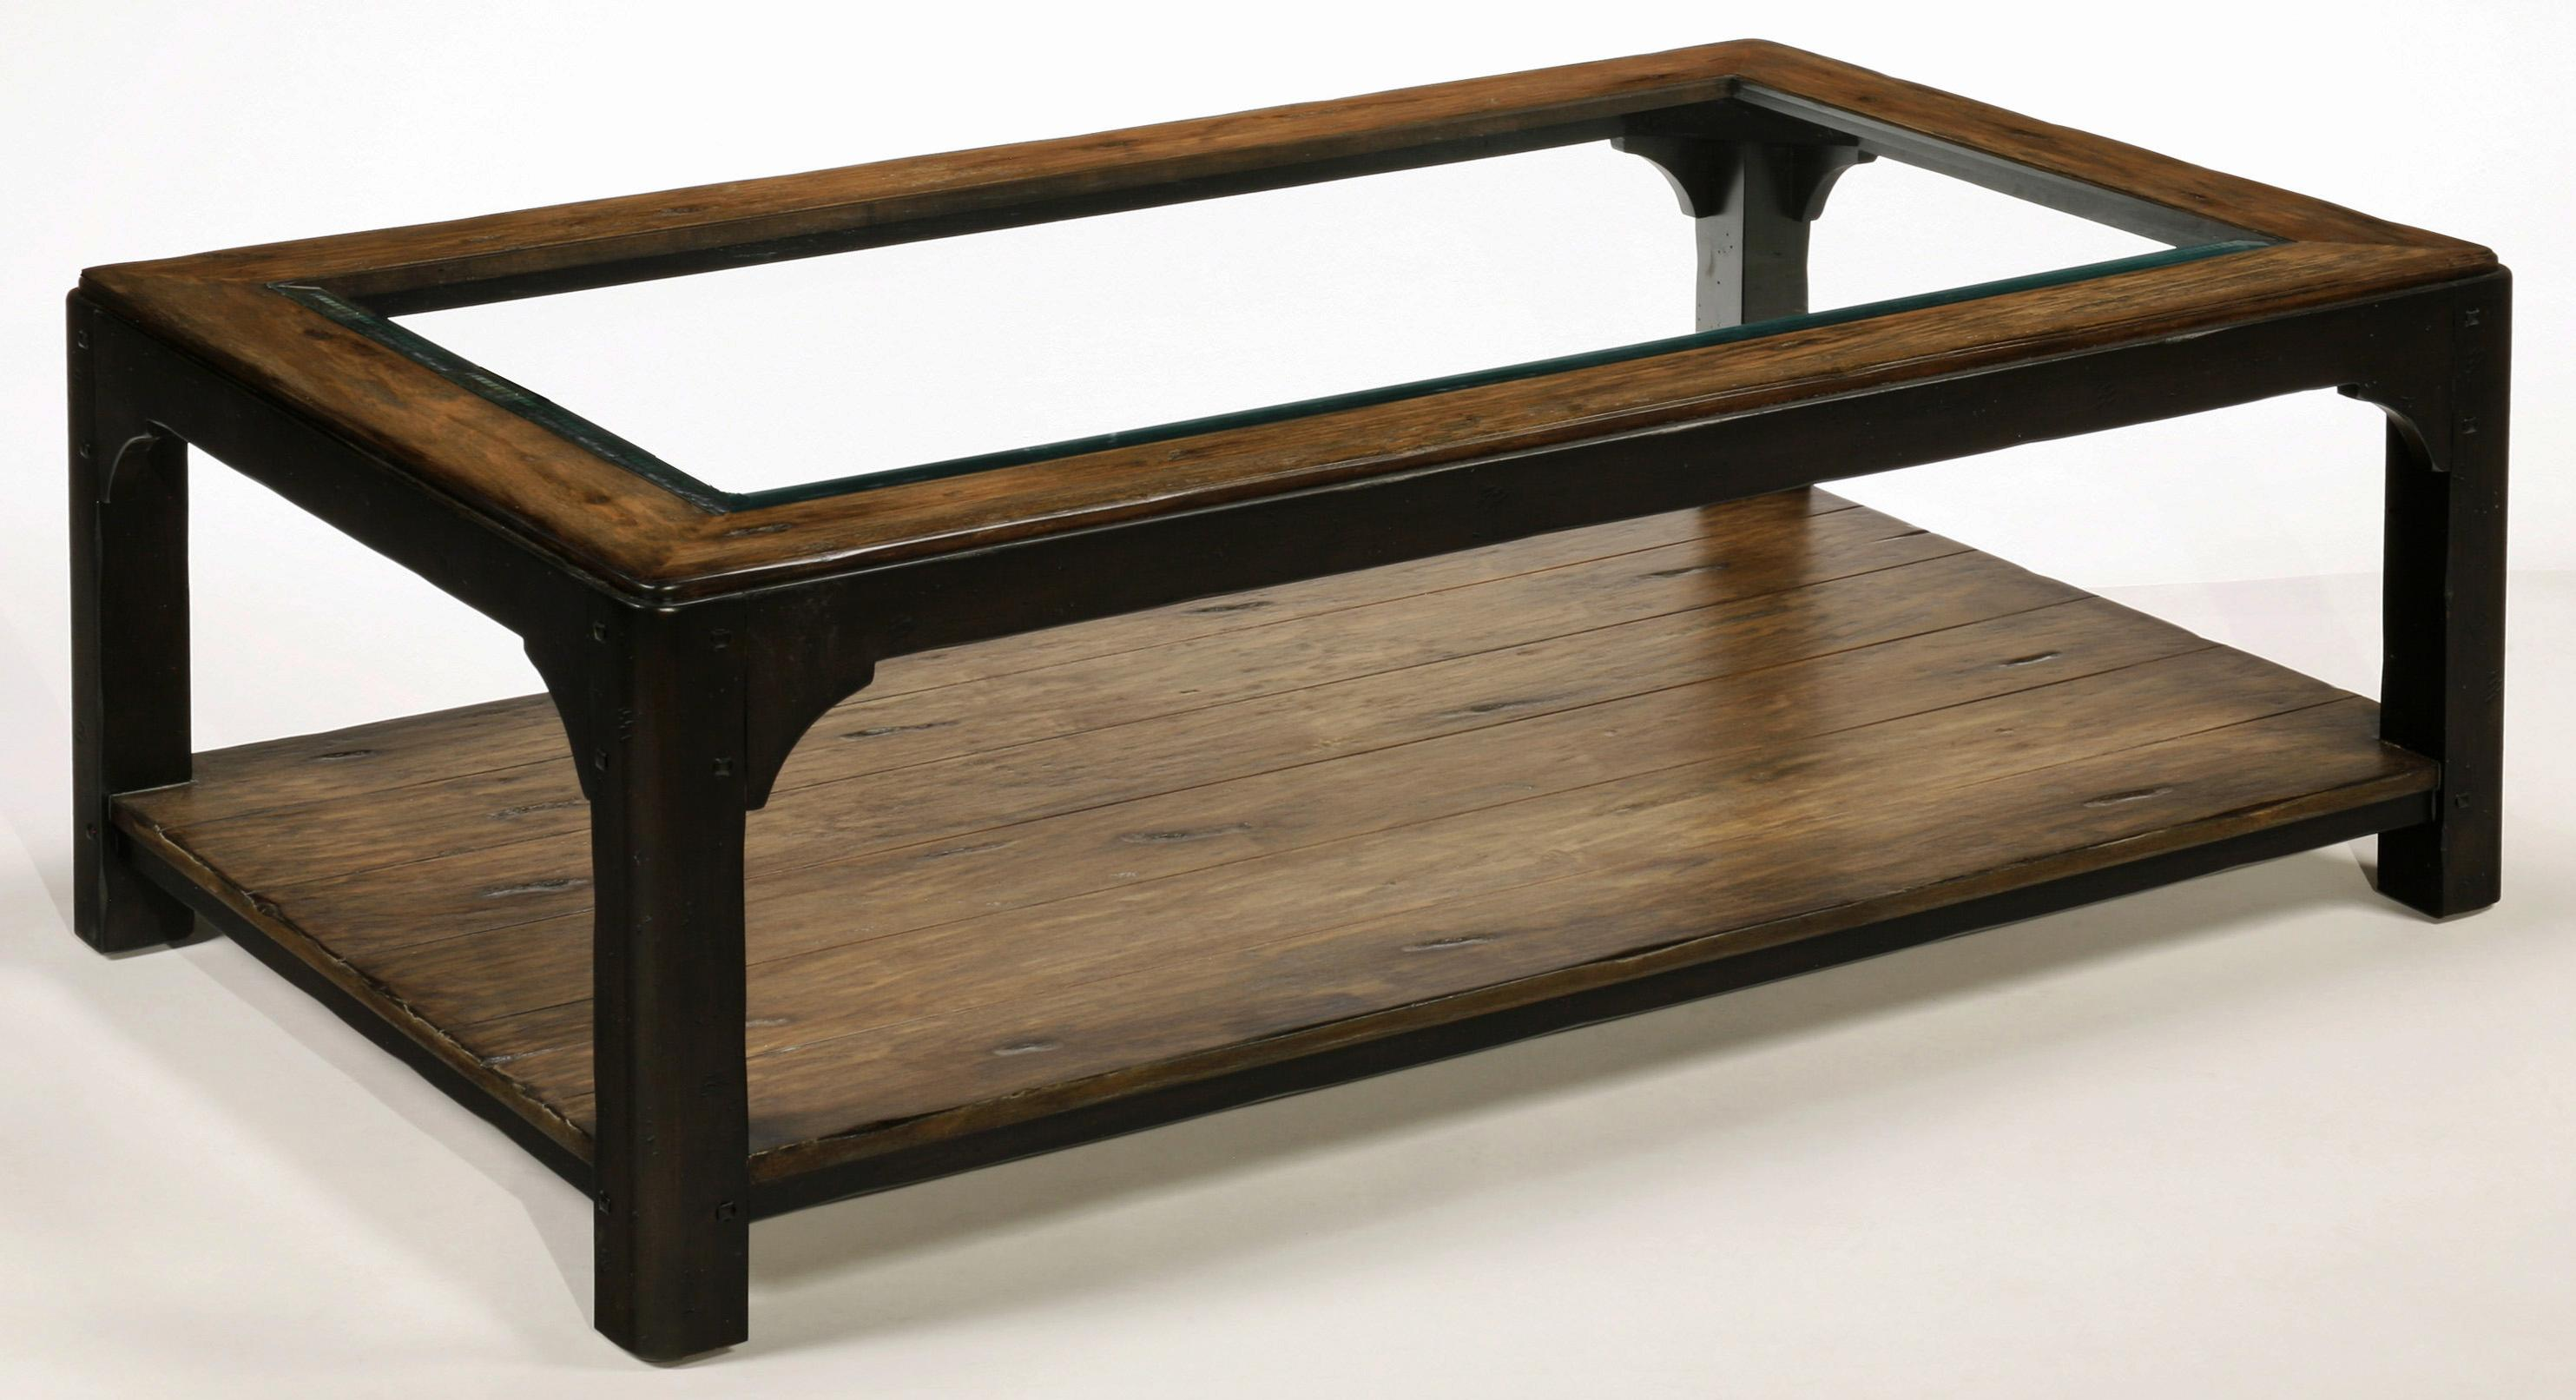 LaurelHouse Designs Carson Glass Top Cocktail Table - Item Number: 104500-02